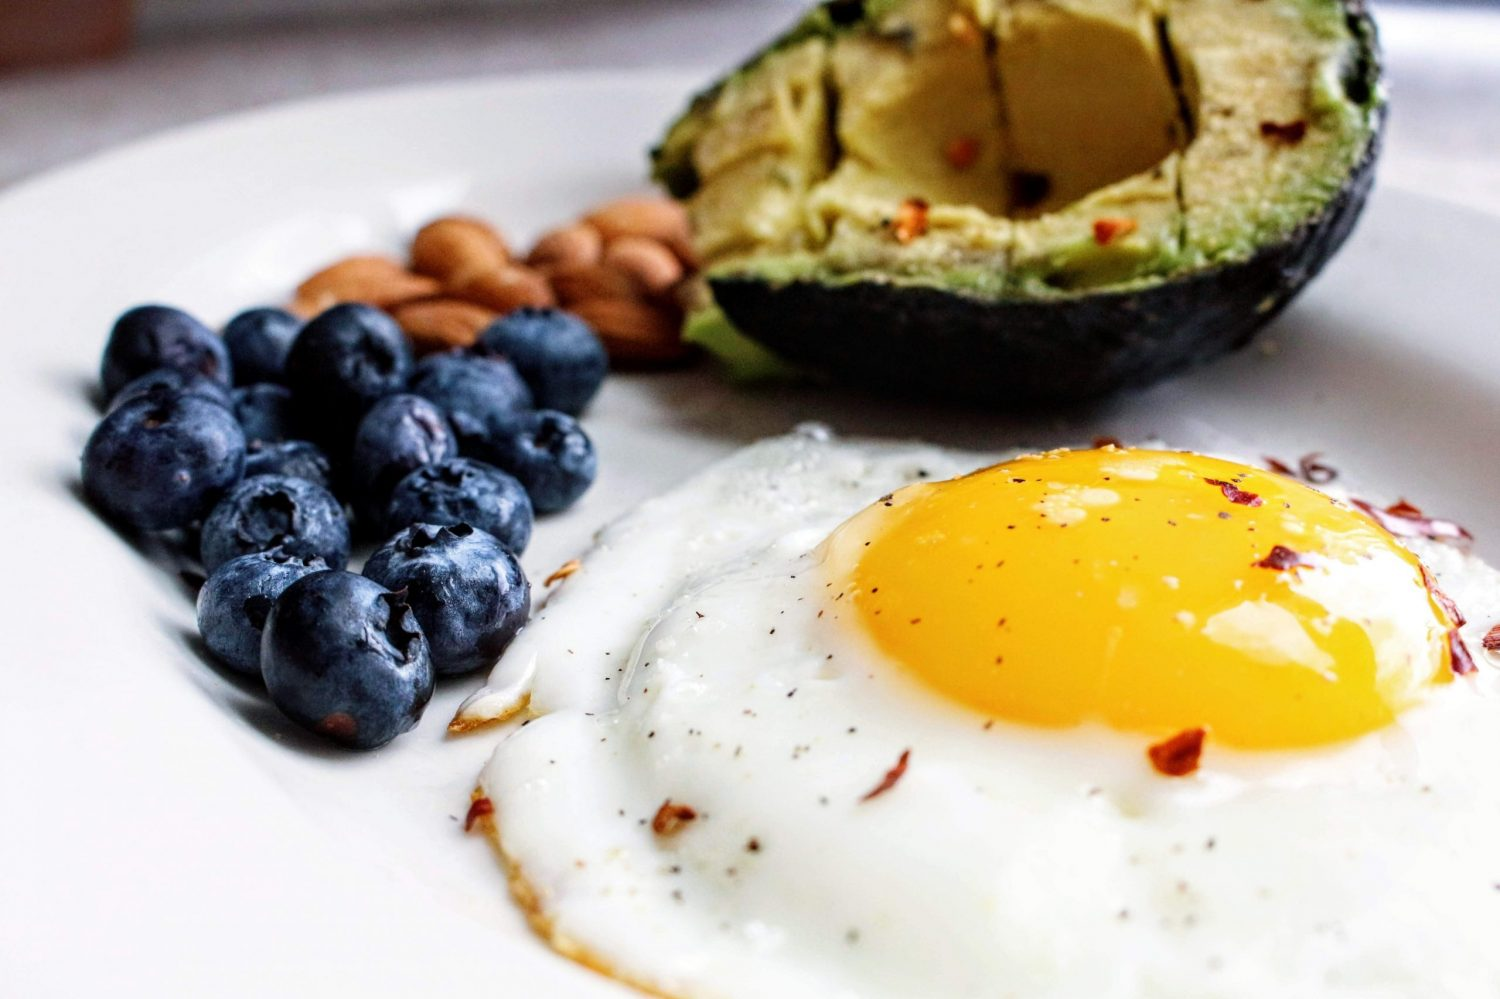 Blueberries, avocado, and fried egg